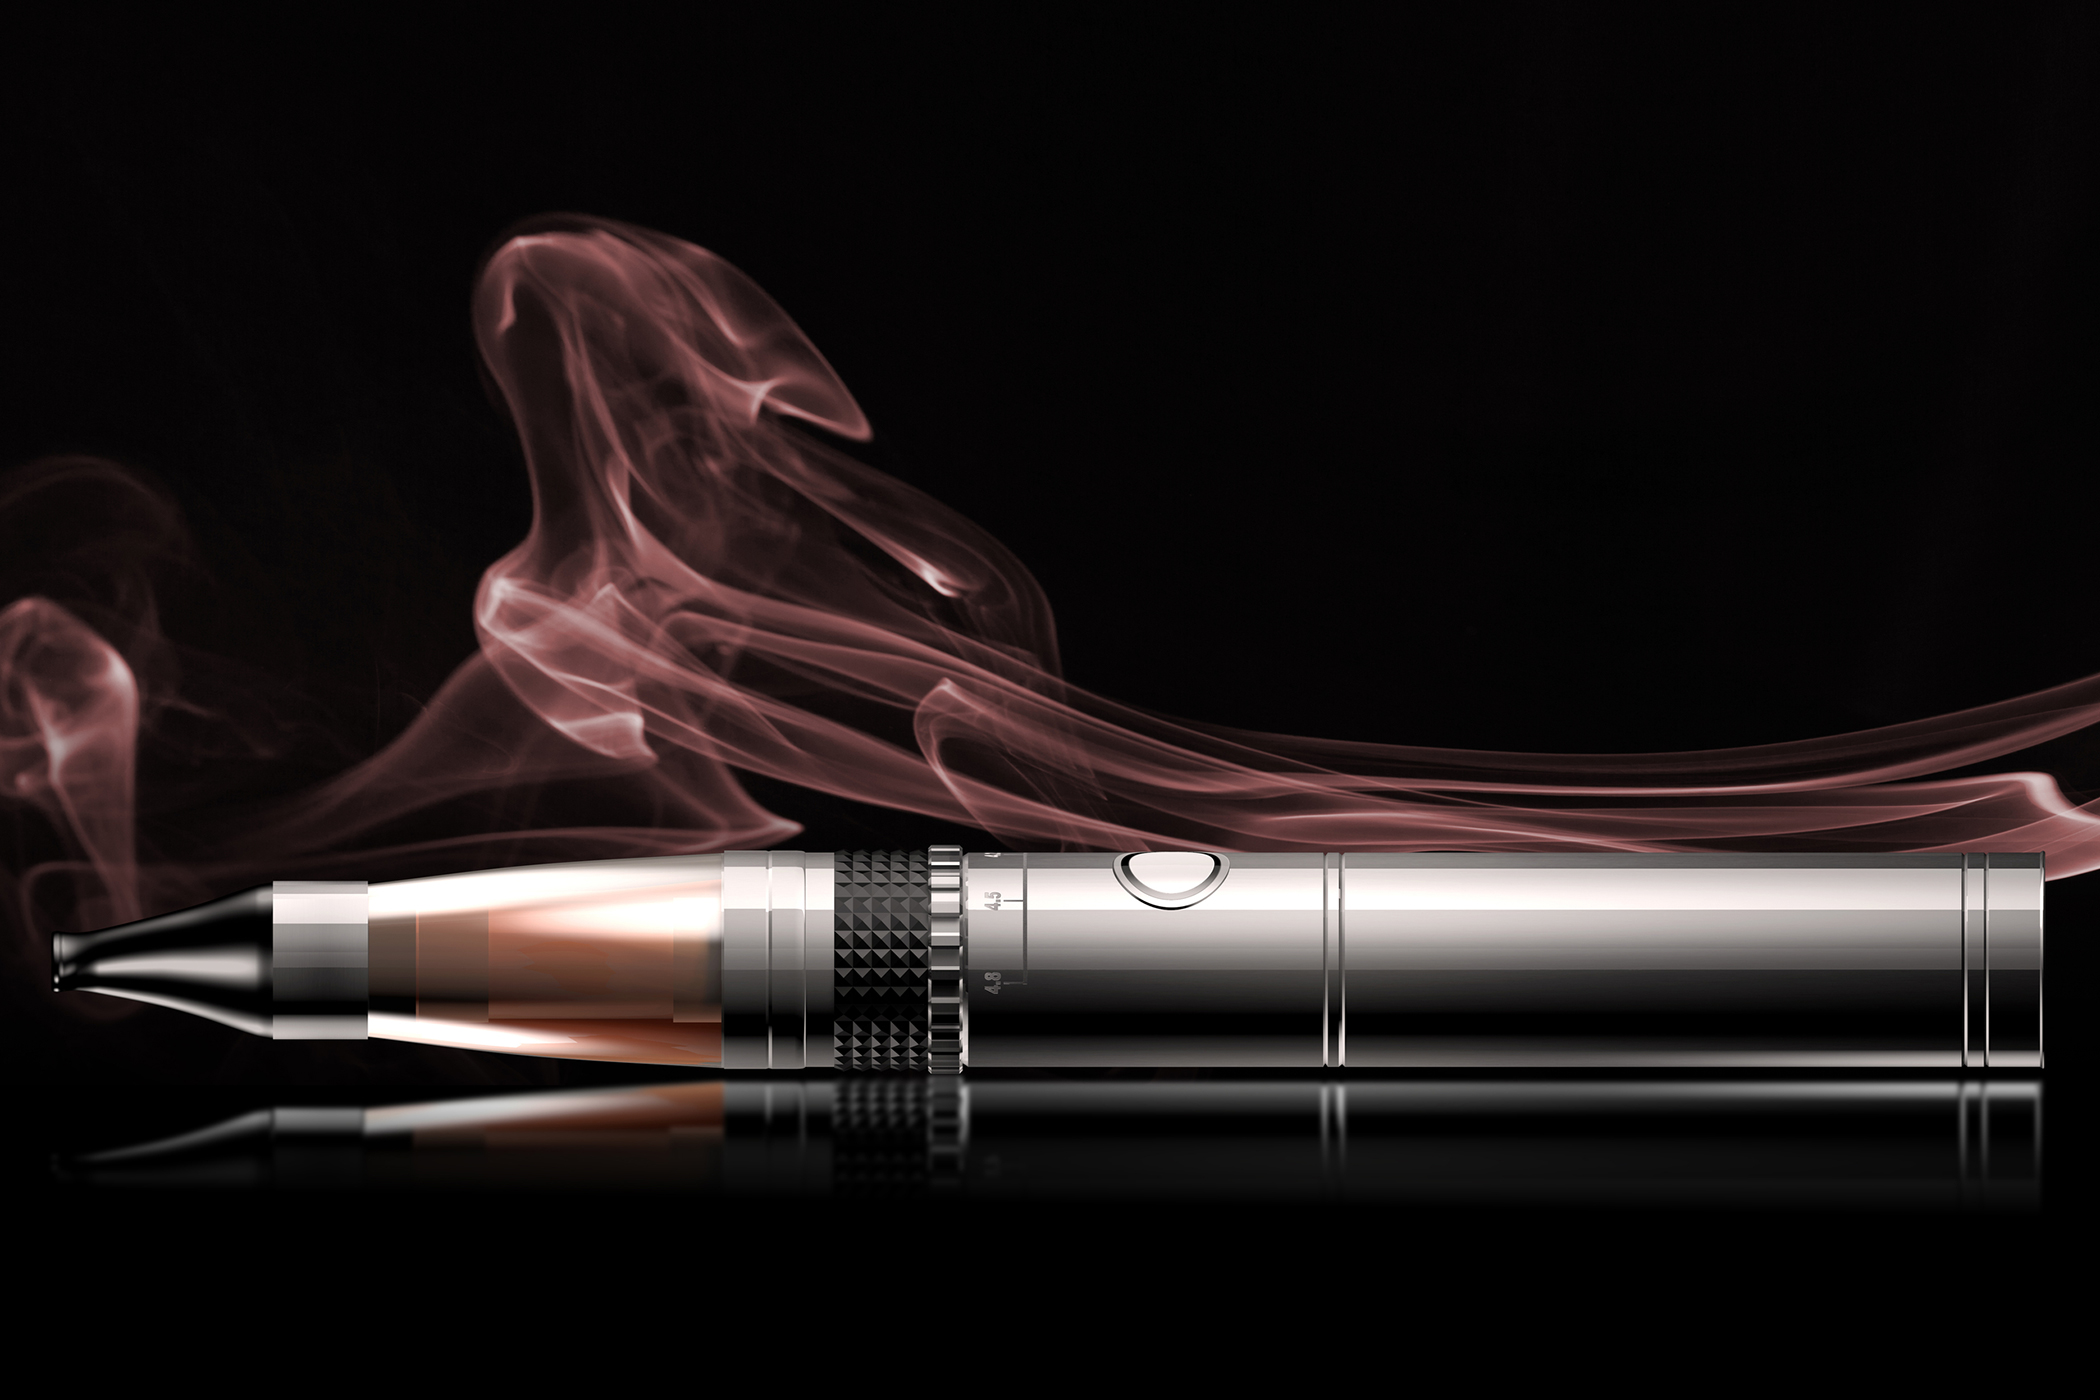 E-Cigarette Allergy in Cats - Symptoms, Causes, Diagnosis, Treatment, Recovery, Management, Cost